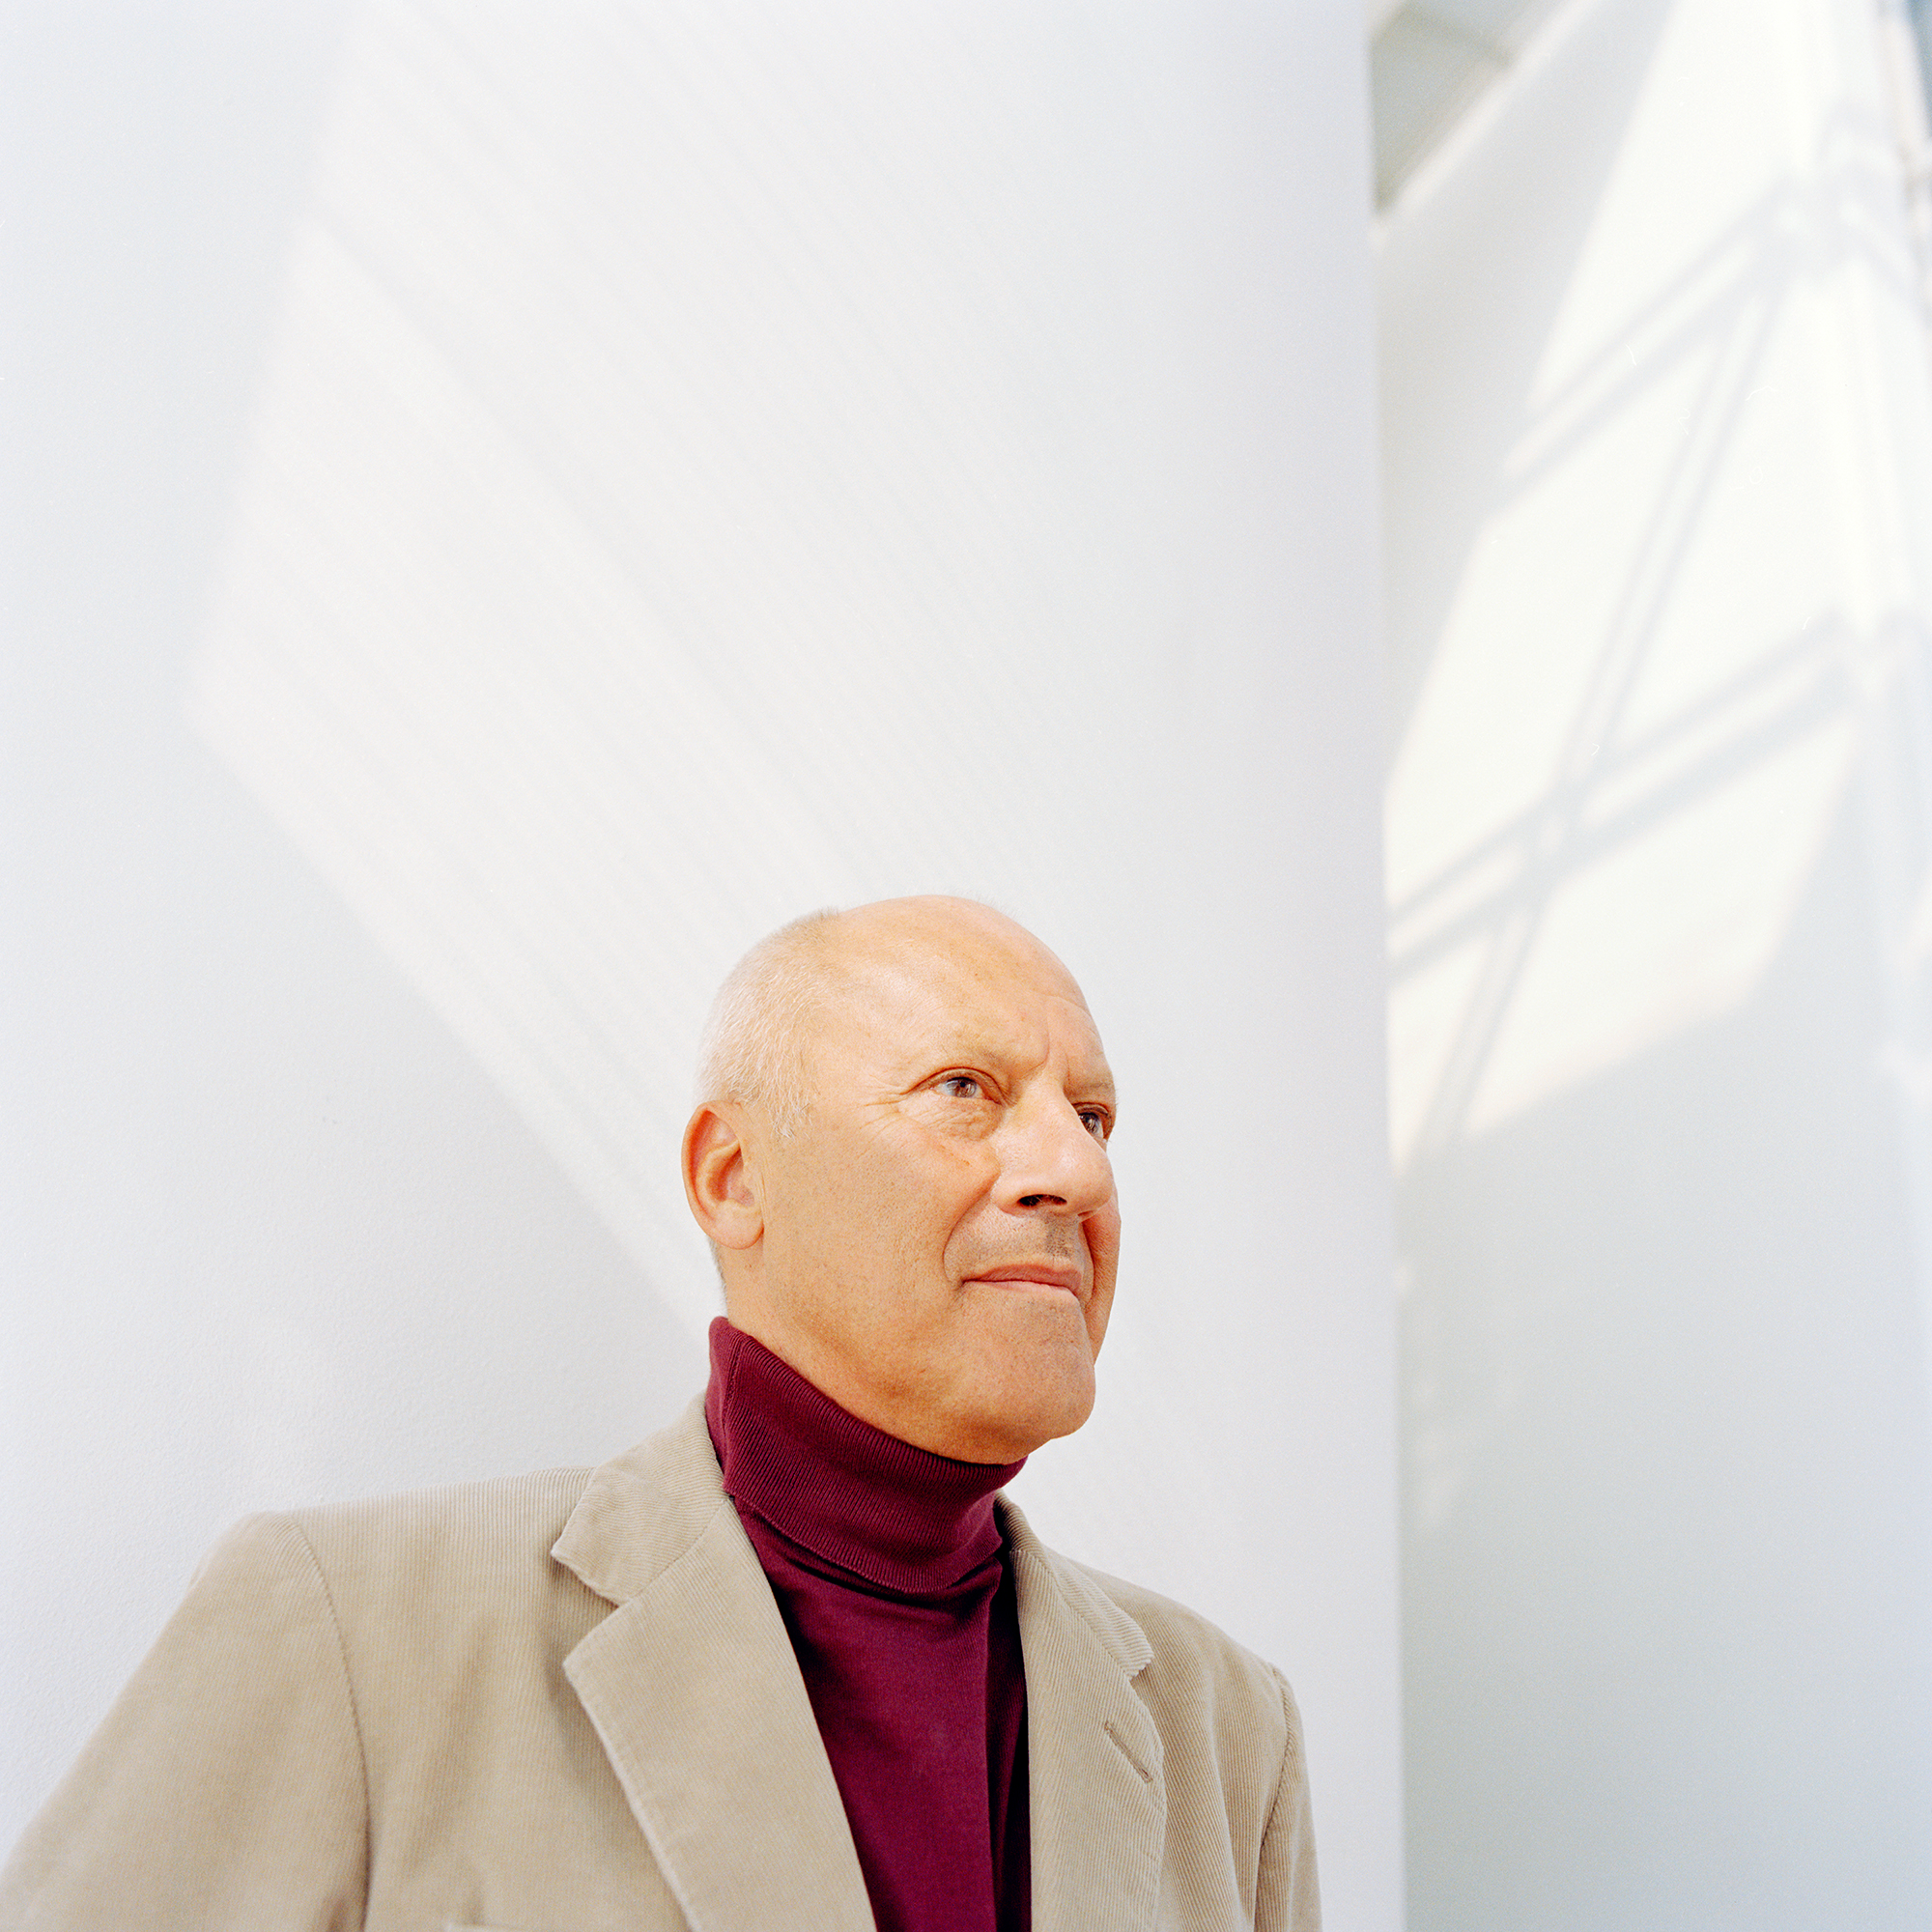 Sir Norman Foster, Architect, London, England